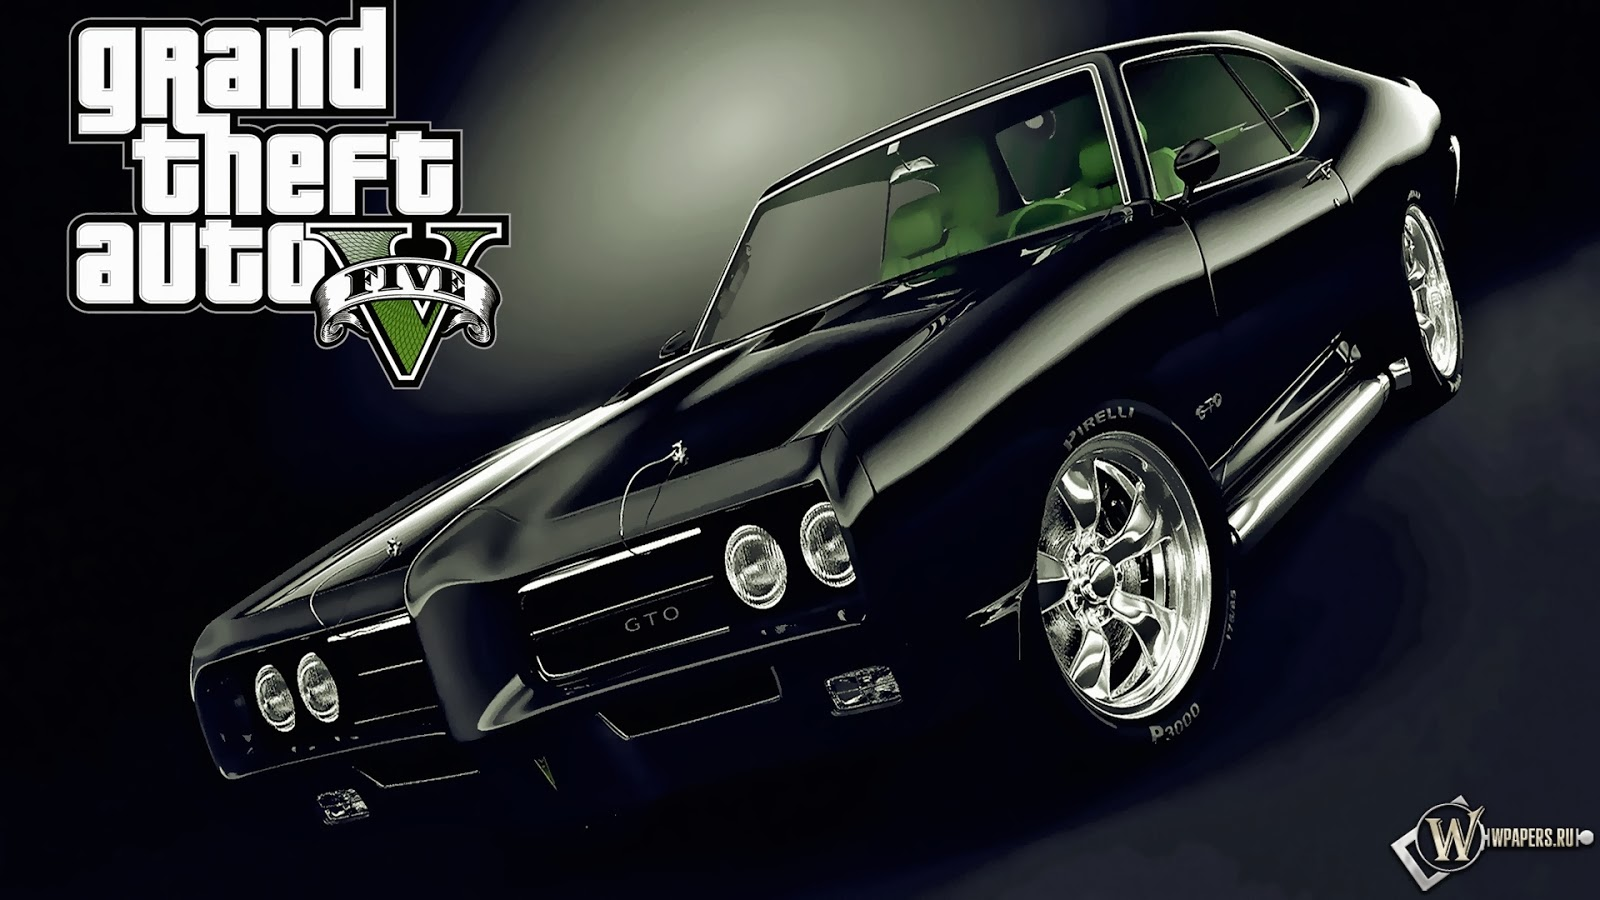 GTA V HD Wallpapers top game grand theft auto five images 1600x900